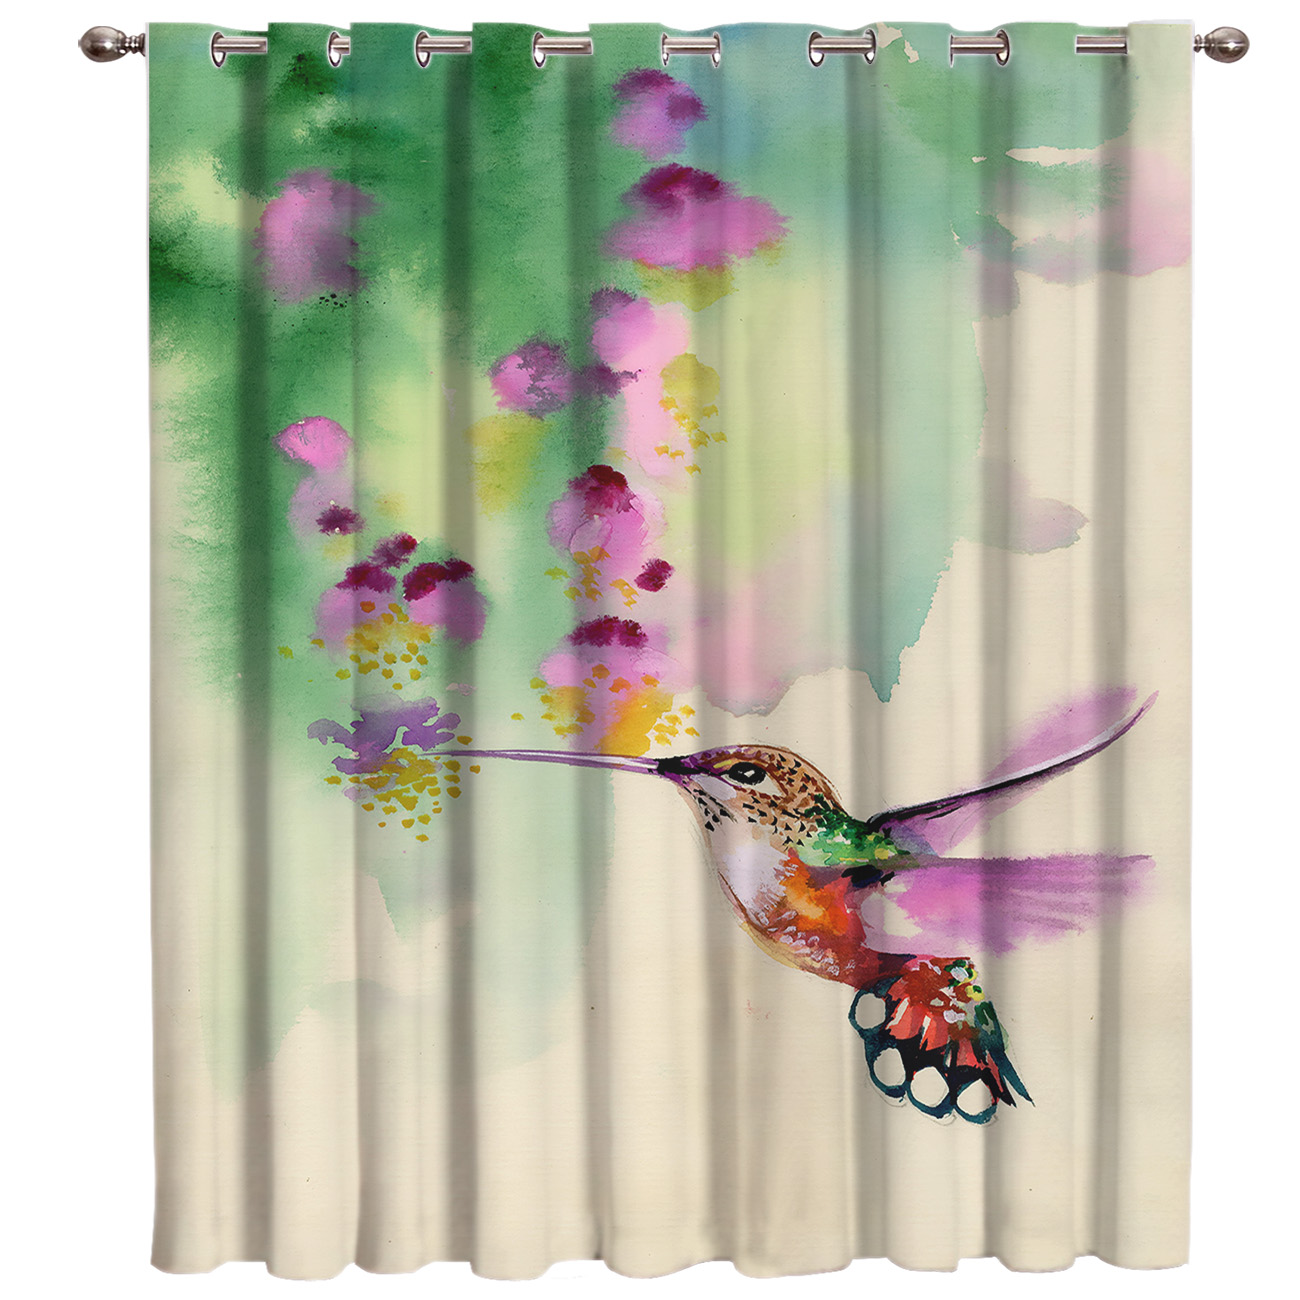 Watercolor Hummingbirds And Flowers Living Room Bathroom Bedroom Kitchen Indoor Fabric Decor Kids Curtain Panels With Grommets